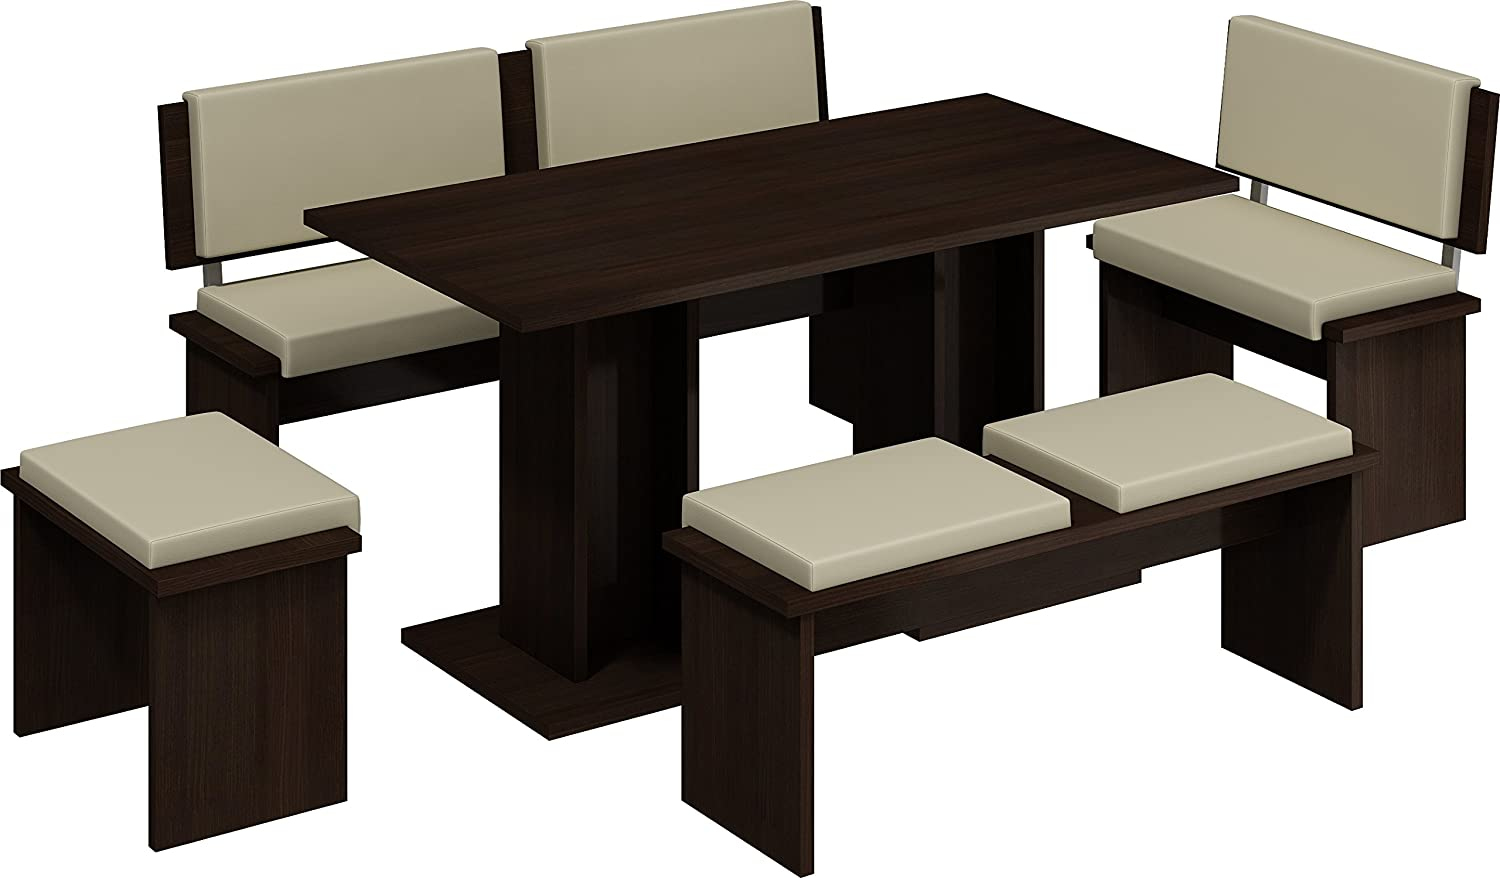 MEBLE FURNITURE & RUGS 5 Pc Breakfast Kitchen Nook Table Set, Bench Seating, Dark Oak with Beige